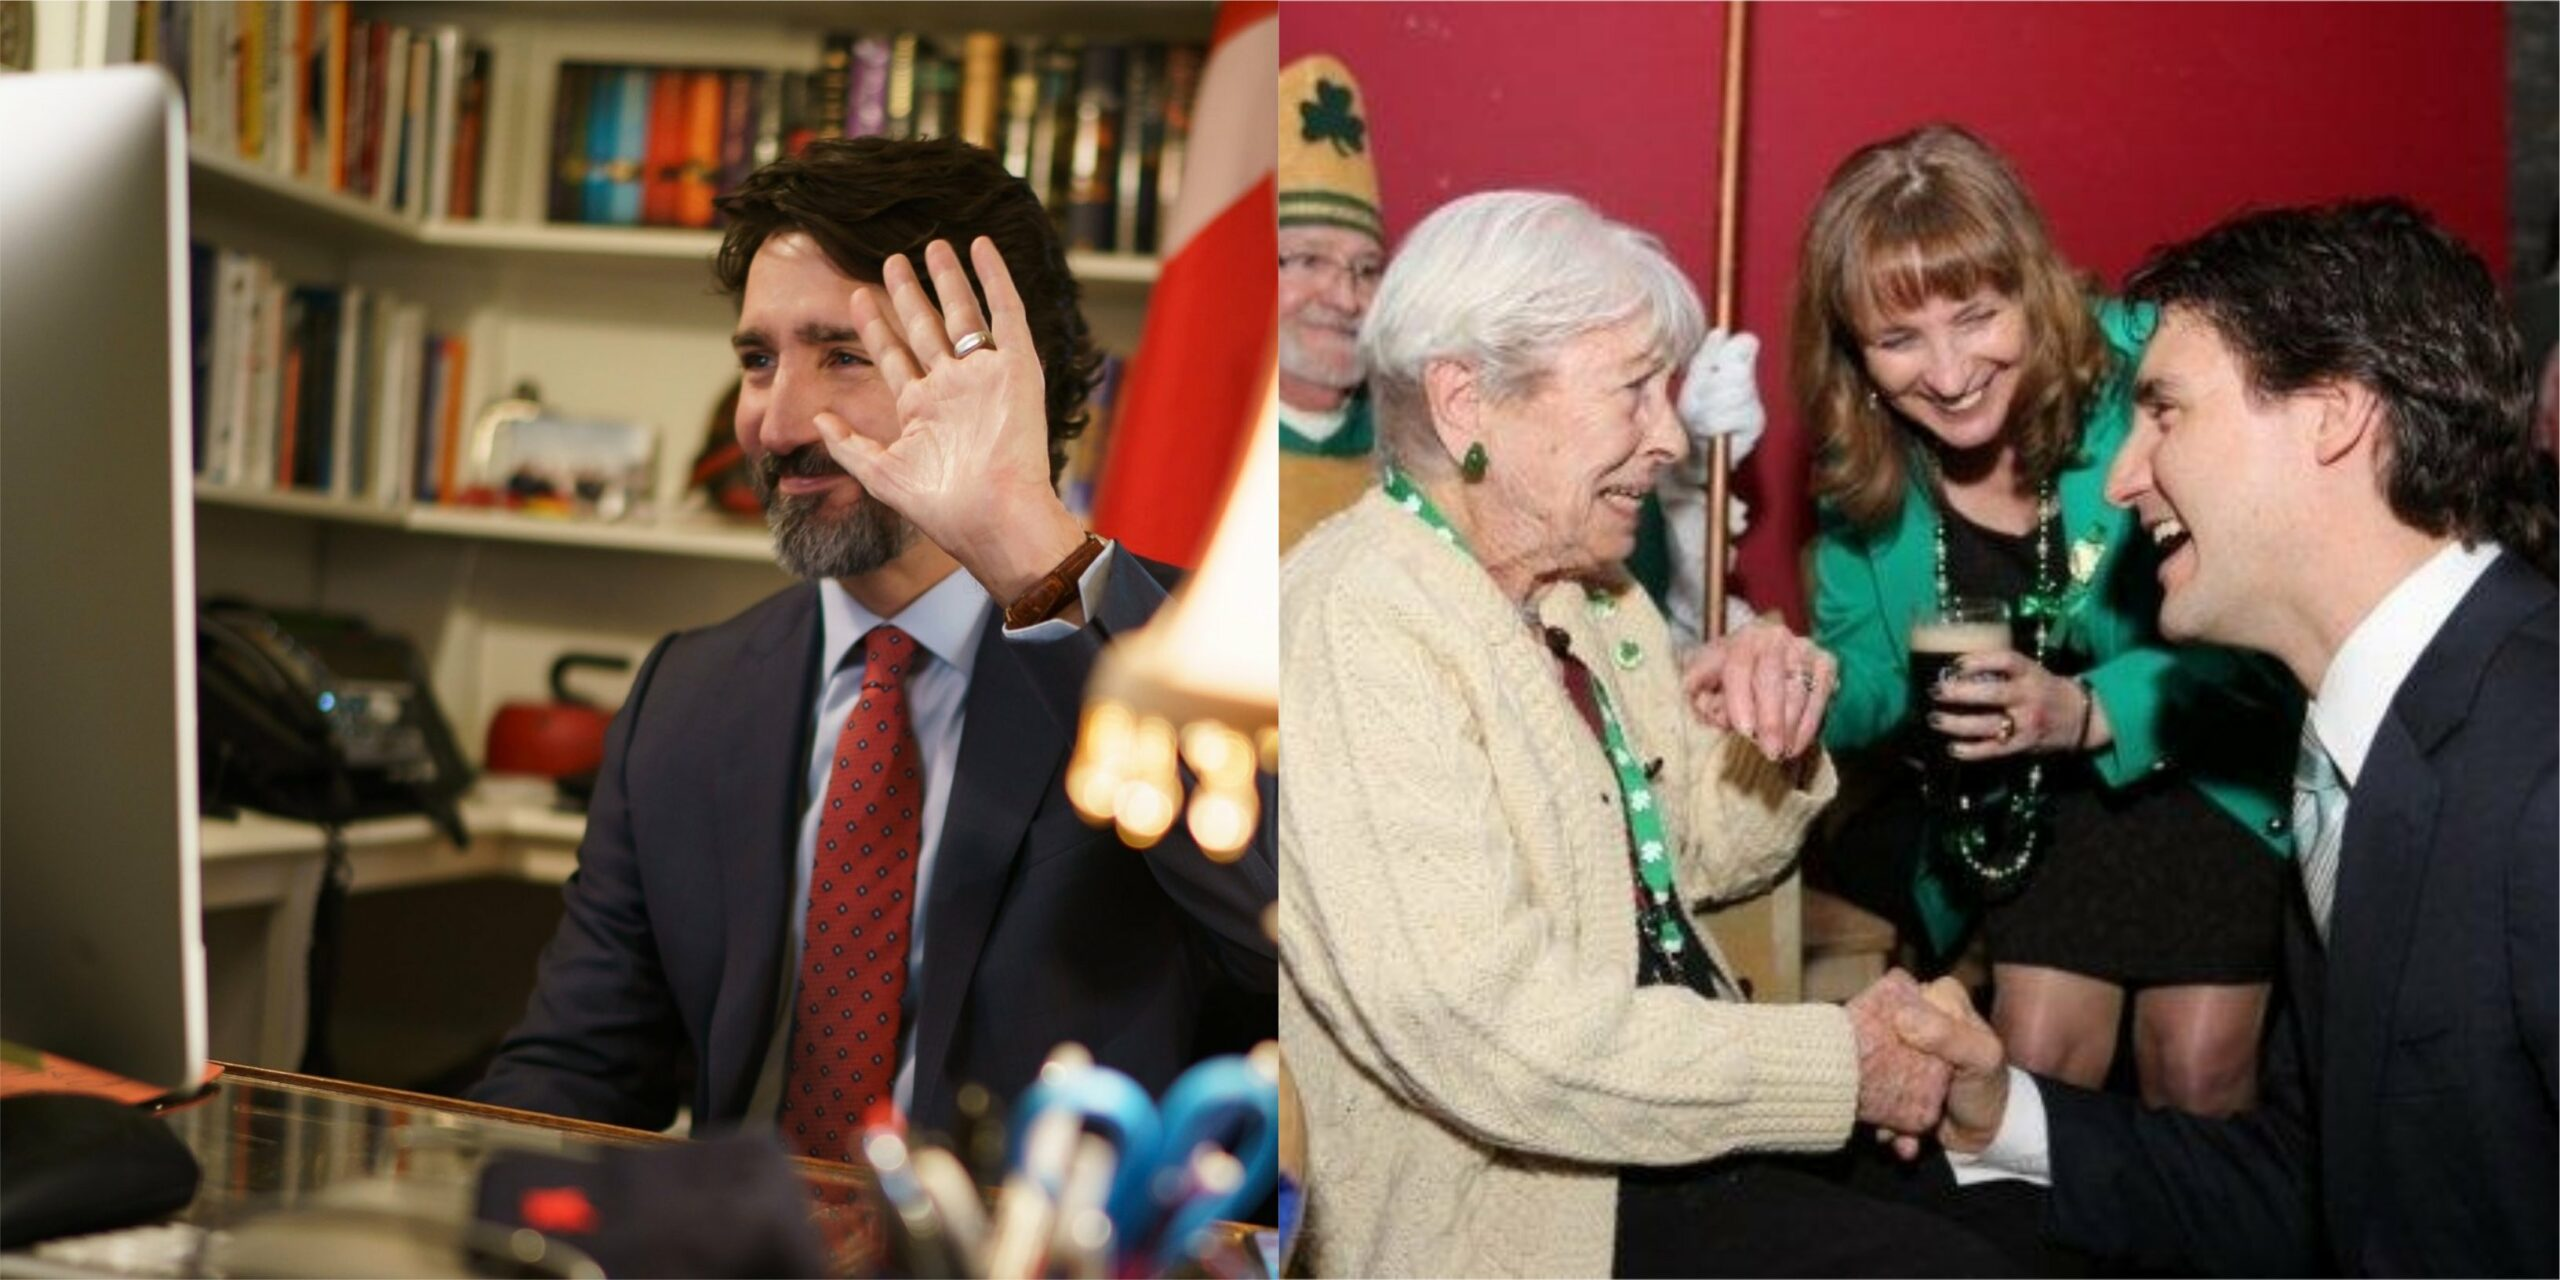 justin-trudeau-has-recommendations-on-how-to-celebrate-st.-patrick's-day